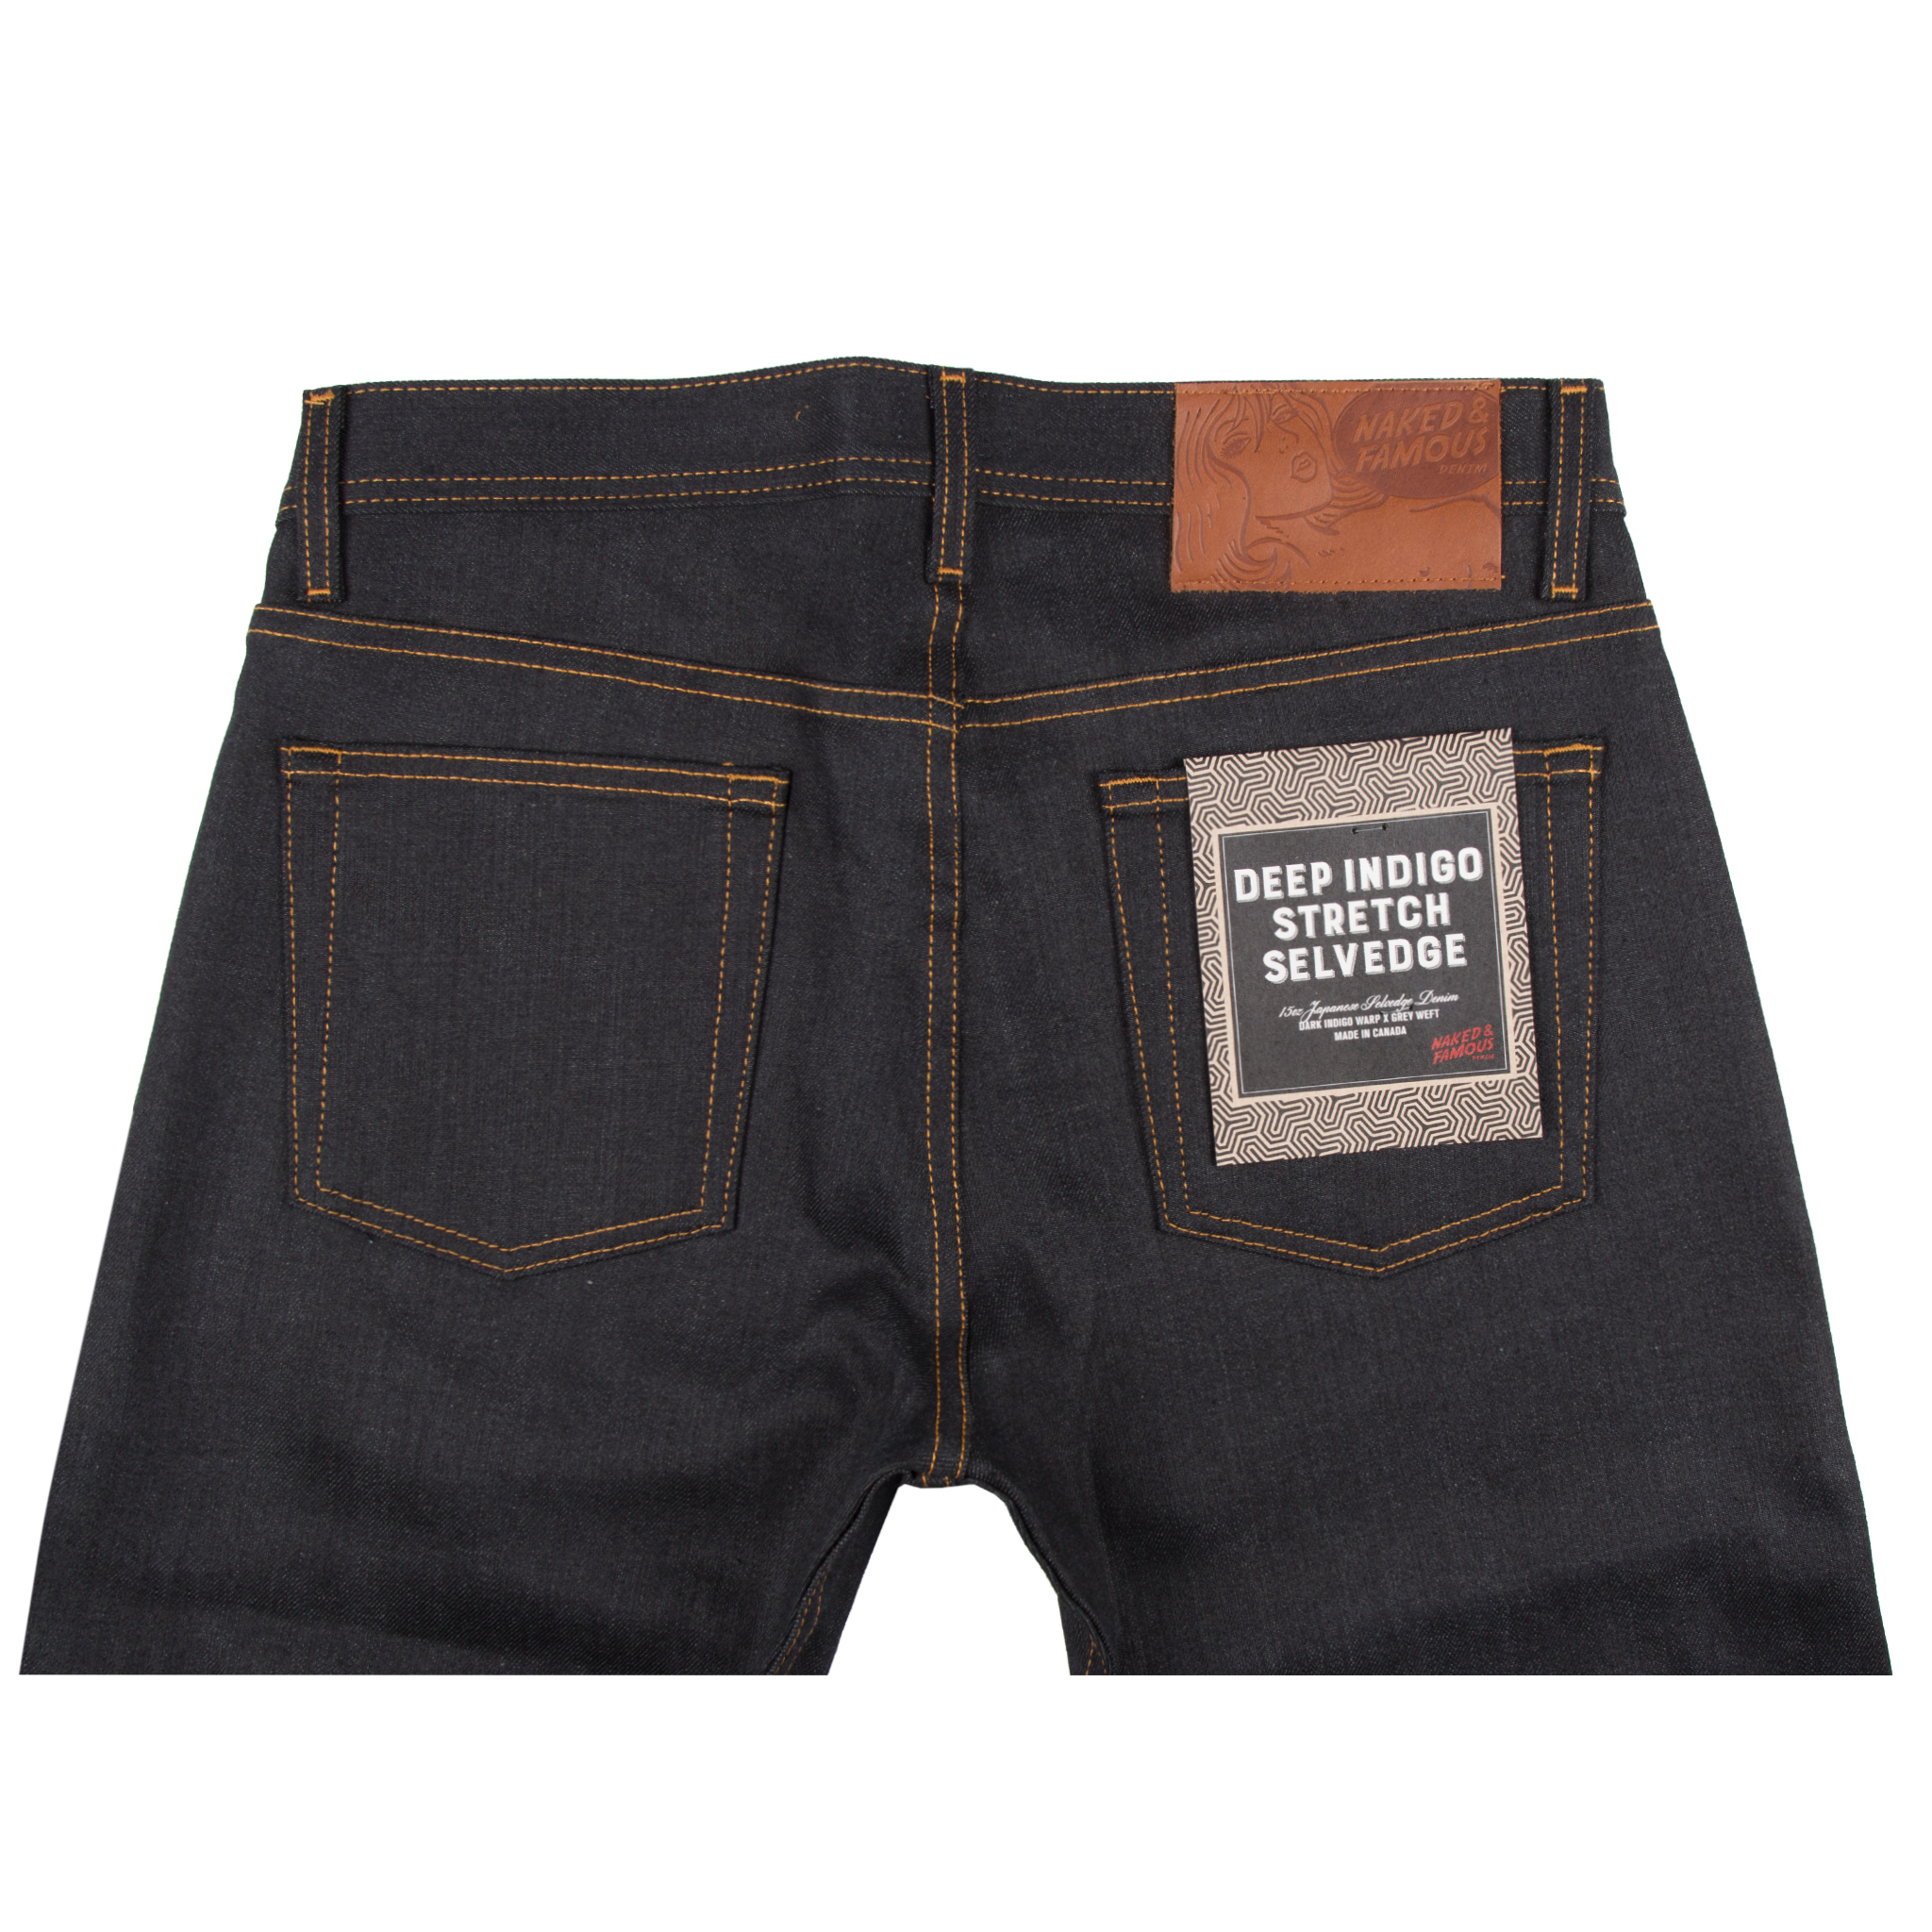 Deep Indigo Stretch Selvedge Jeans Back